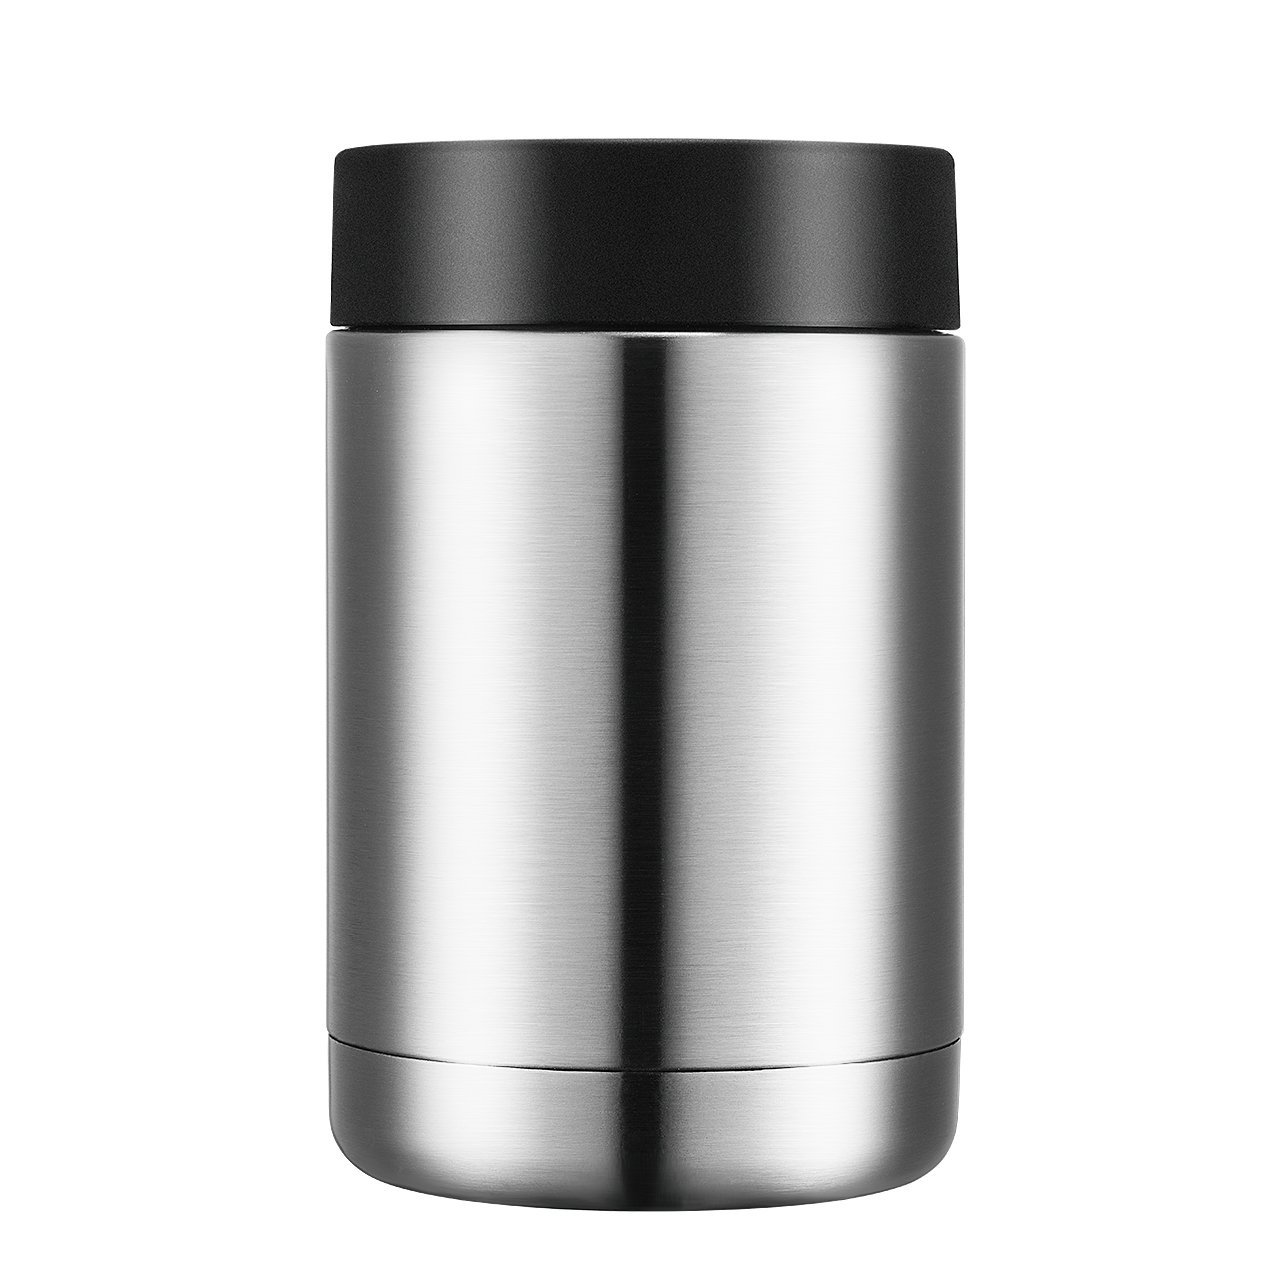 Homitt Stainless Steel Beer Coozies Beverage Can Insulator Double Walled Vacuum Insulated Can Cooler for Standard 12 OZ Cans and Bottles